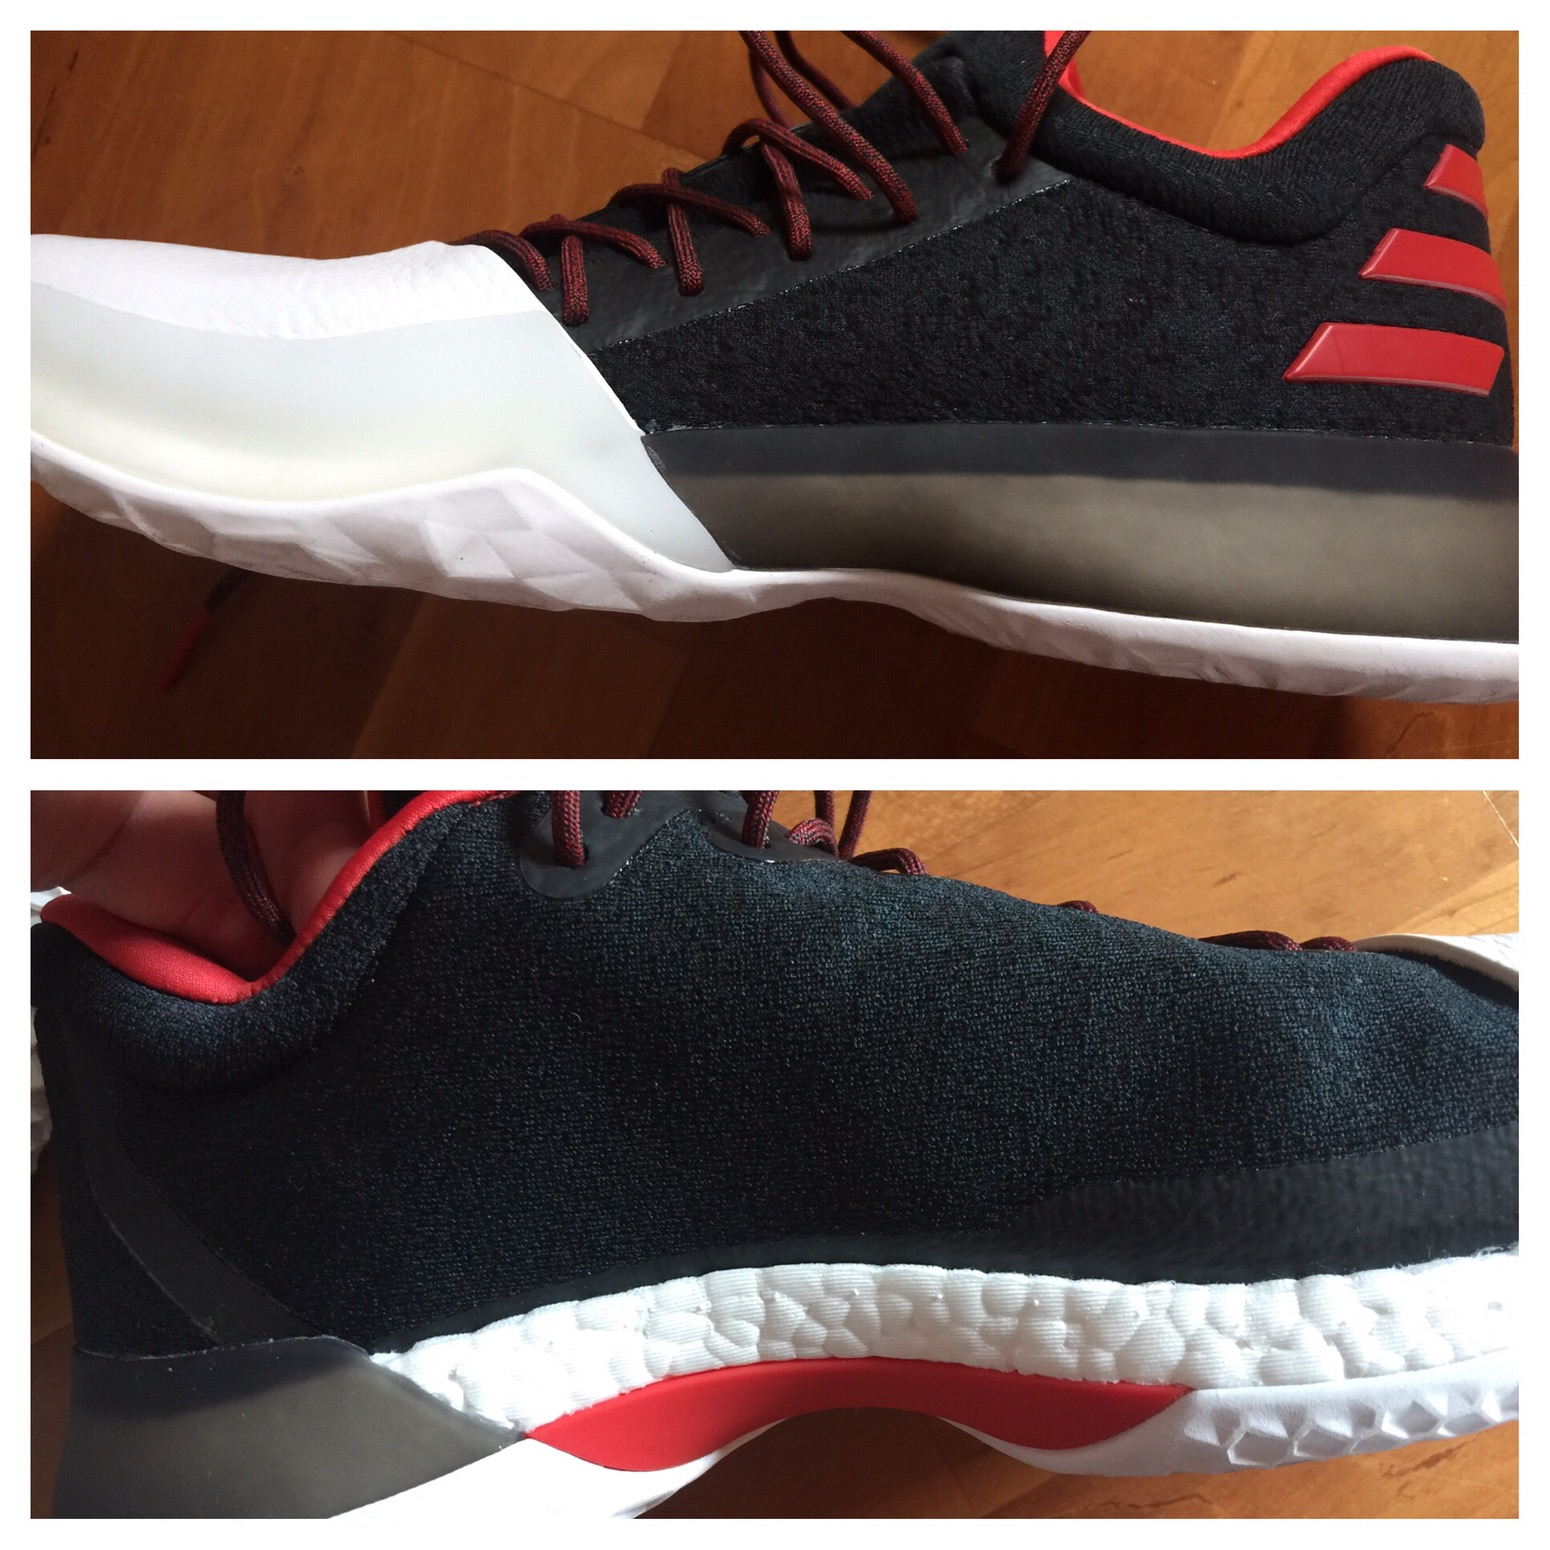 65d76f306bdd Full length Boost but even lower than the Crazylight Boost 2016. If you re  expecting Ultra Boost plushness look elsewhere but if you want a ride that  has a ...